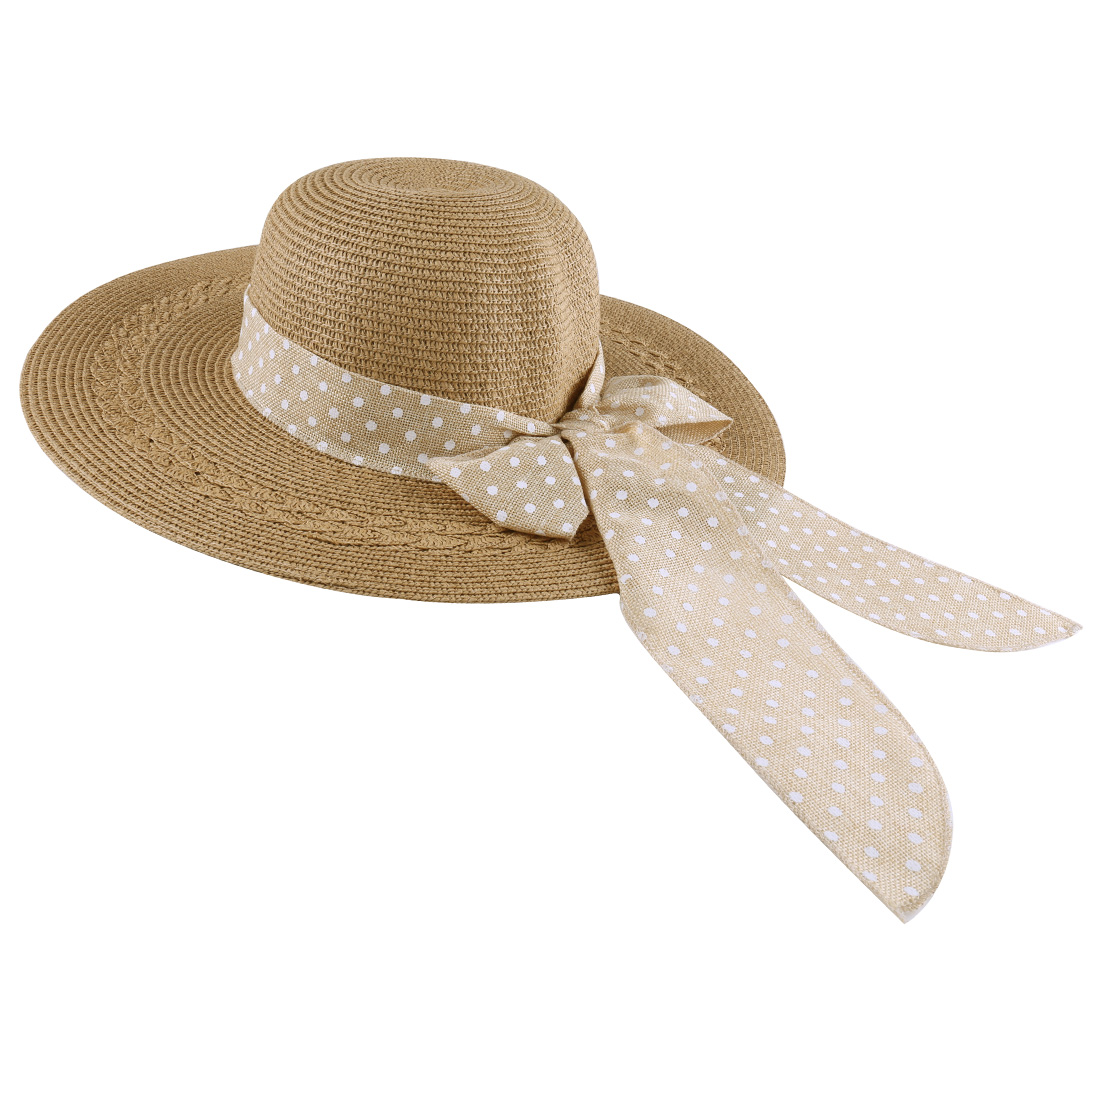 Woman Fashion Elastic Buckle Adjust Neck Strap Design Light Brown Sun Hat